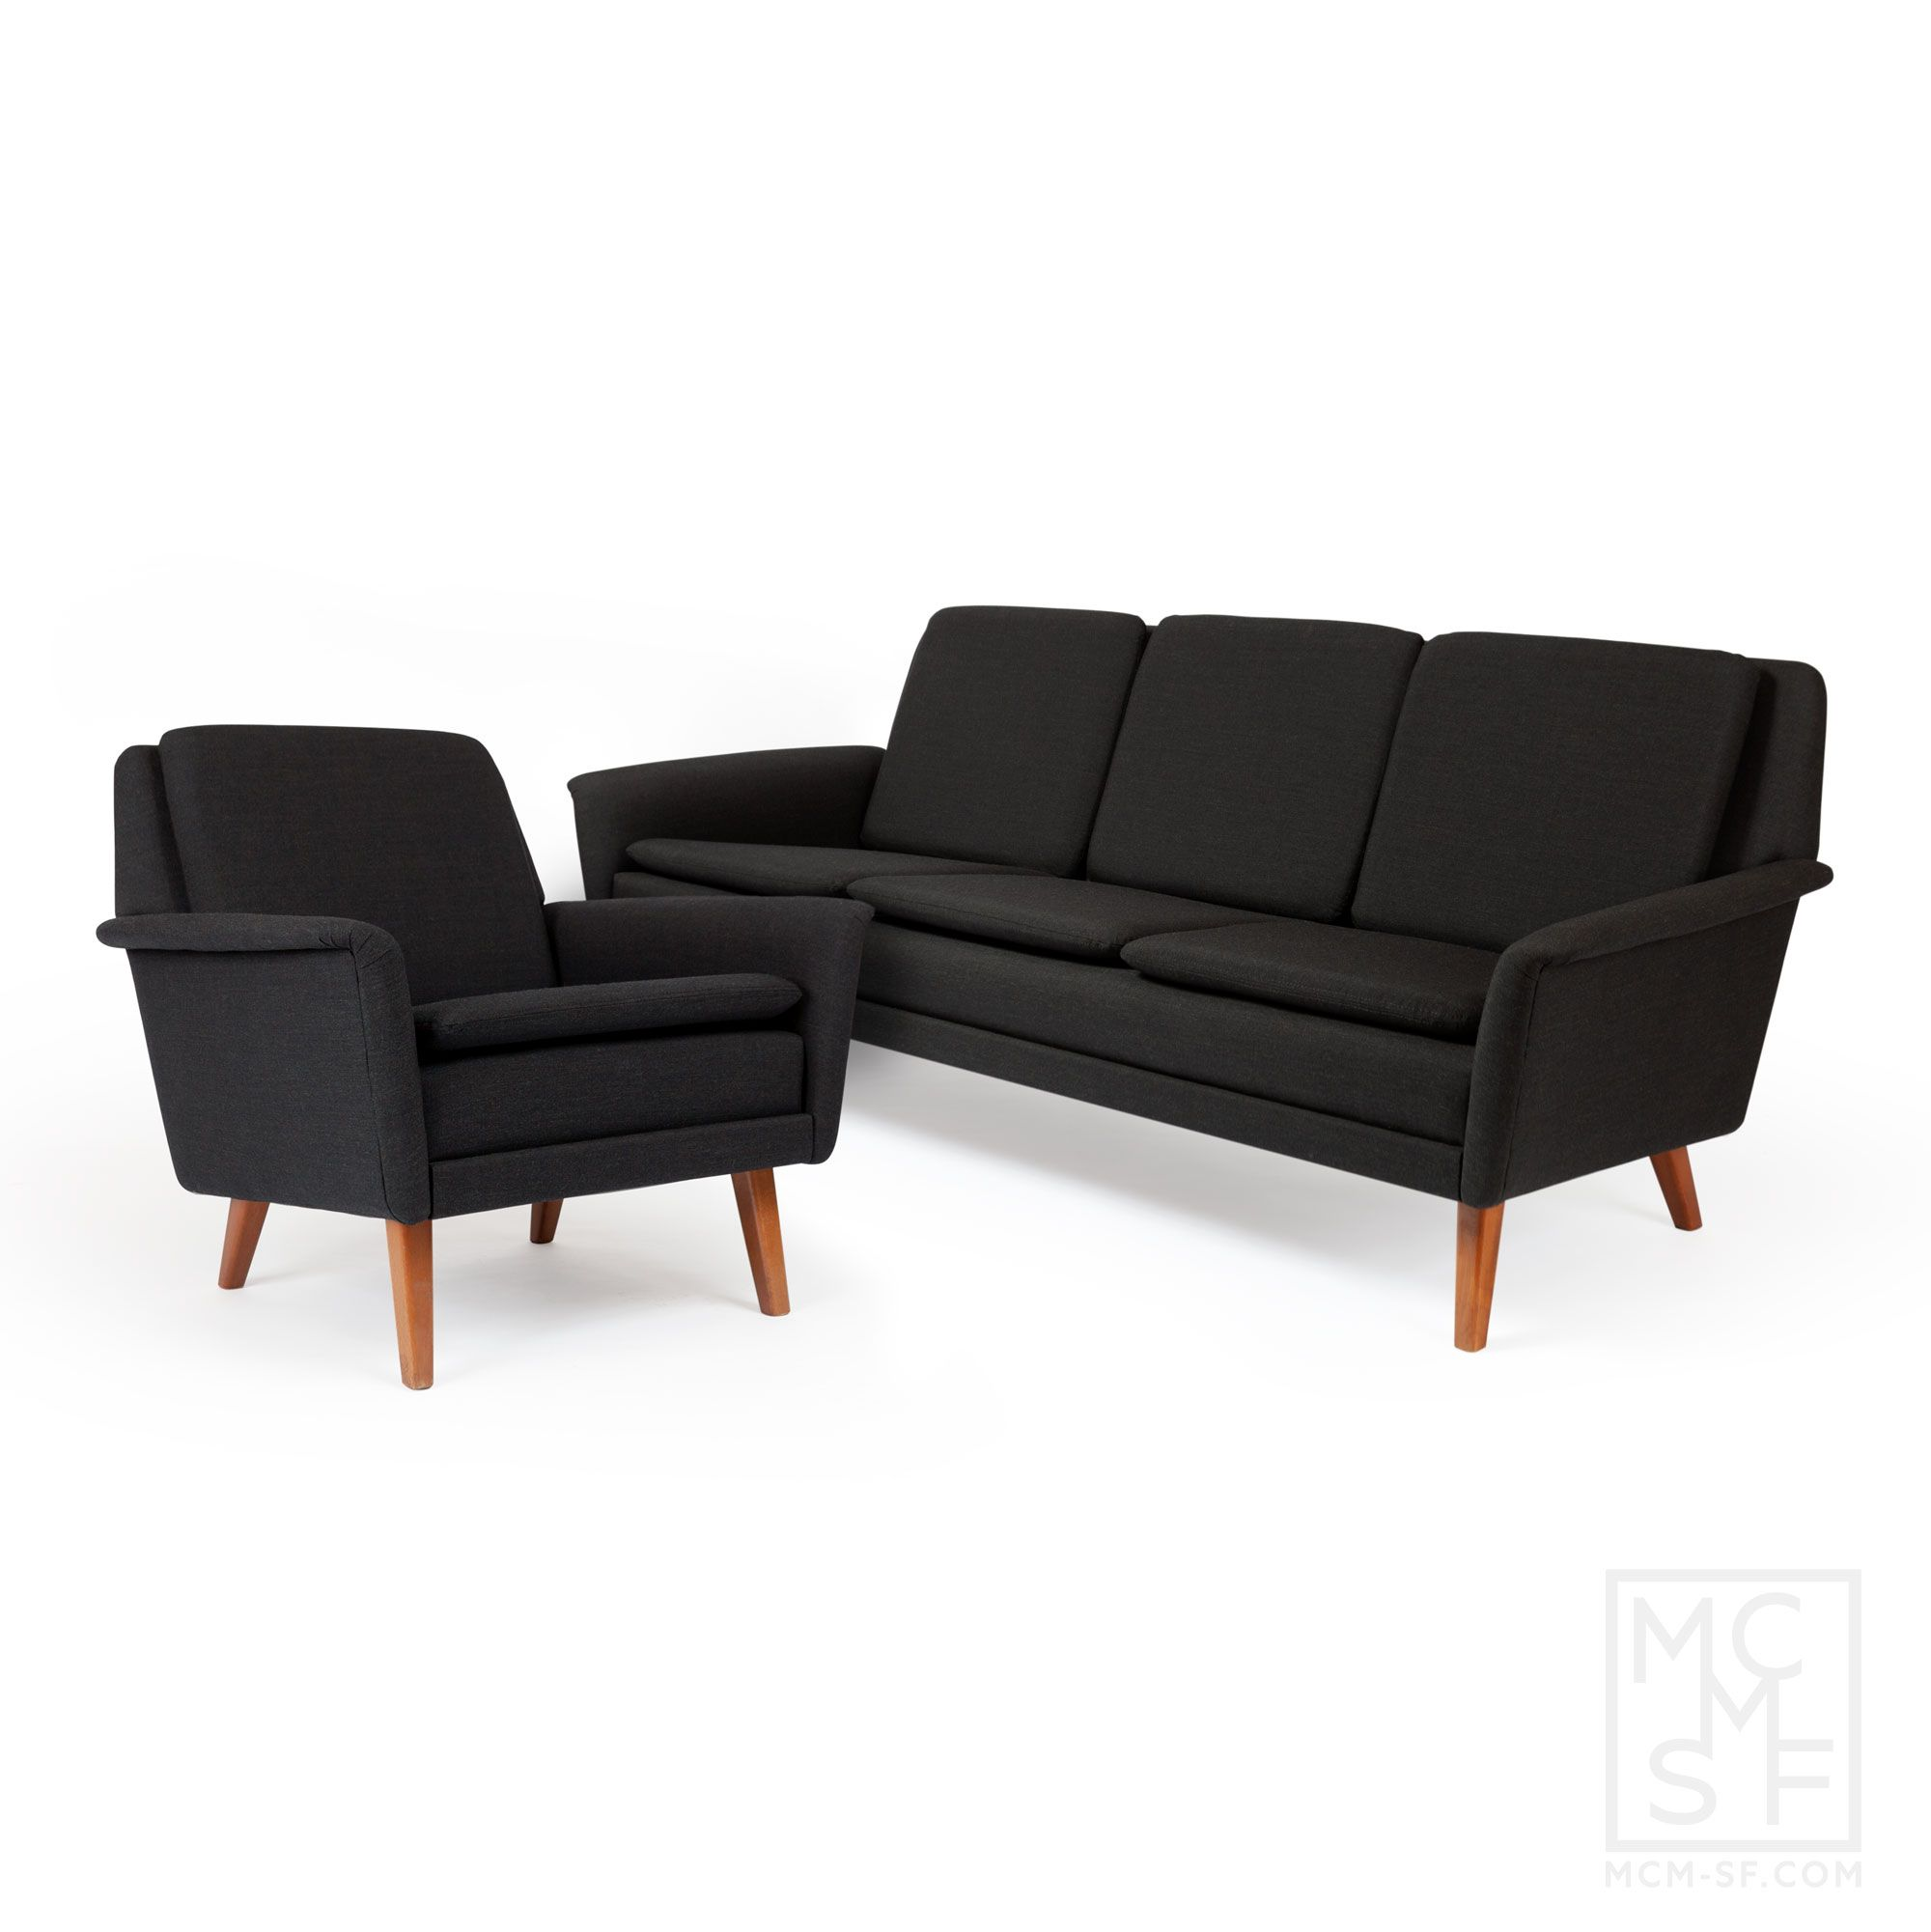 Sofa And Lounge Chair Designed By Folke Ohlsson Manufactured Dux Of Sweden In The 1960s Set Has Been Imported From Denmark Recently